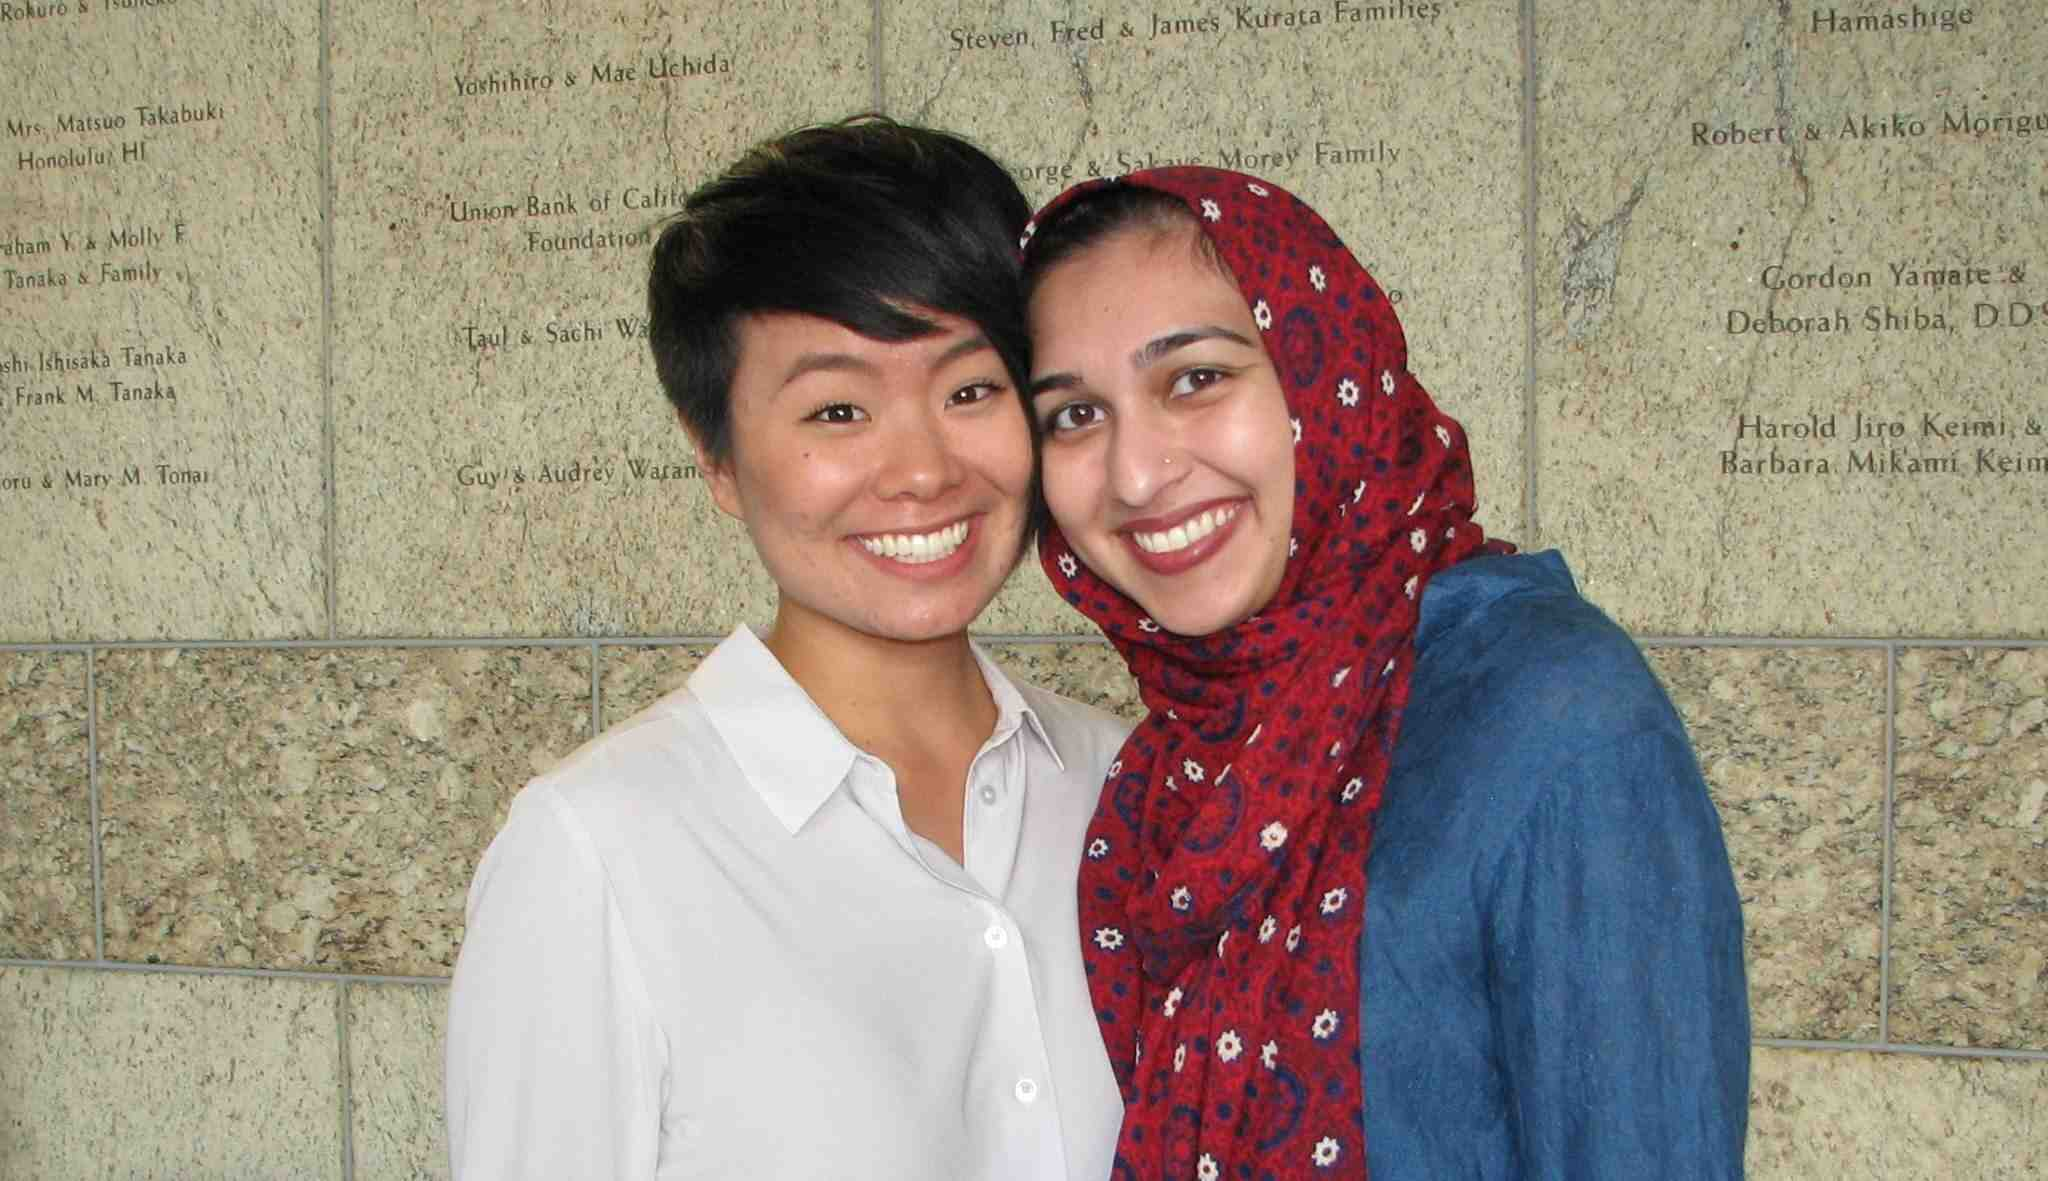 Traci Ishigo of JACL-PSW and Sahar Pirzada of CAIR-LA at this year's Day of Remembrance program in Little Tokyo. (J.K. YAMAMOTO/Rafu Shimpo)